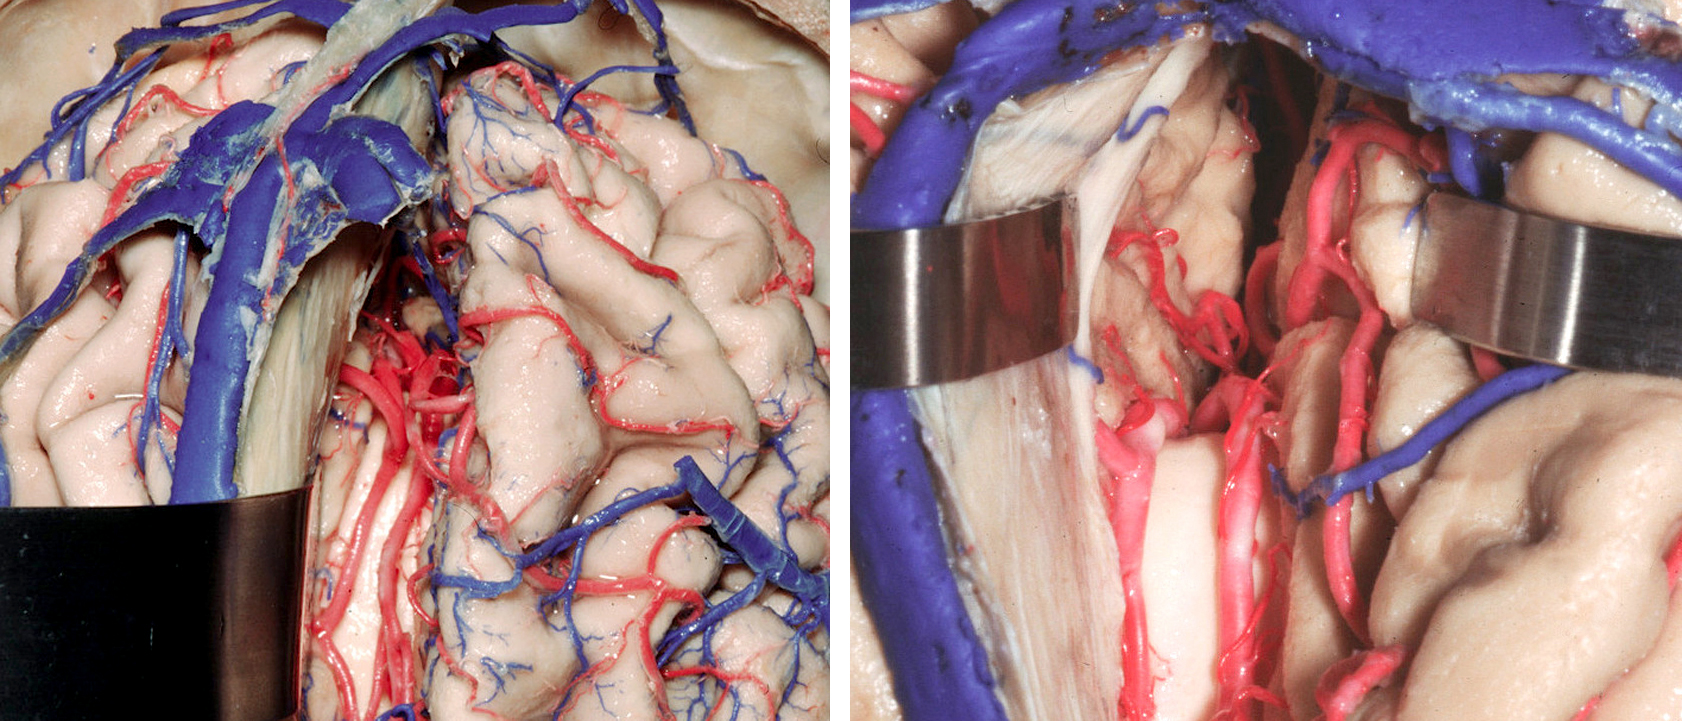 Figure 4: The callosomarginal artery is a major branch of the distal ACA, the most common location for pericallosal artery aneurysms, and its dissection guides the surgeon to the aneurysm. It arises distal to the frontopolar artery and the anterior internal frontal artery, and ascends dorsally within the callosomarginal sulcus. Branches of this artery supply the paracentral lobule and parts of the cingulate gyrus. This artery varies inversely in size with that of the distal pericallosal artery system and may be a distinct vessel or consist of a group of several ascending vessels that emerge individually from the pericallosal artery. The interhemispheric operative corridor is shown (Image courtesy of AL Rhoton, Jr).